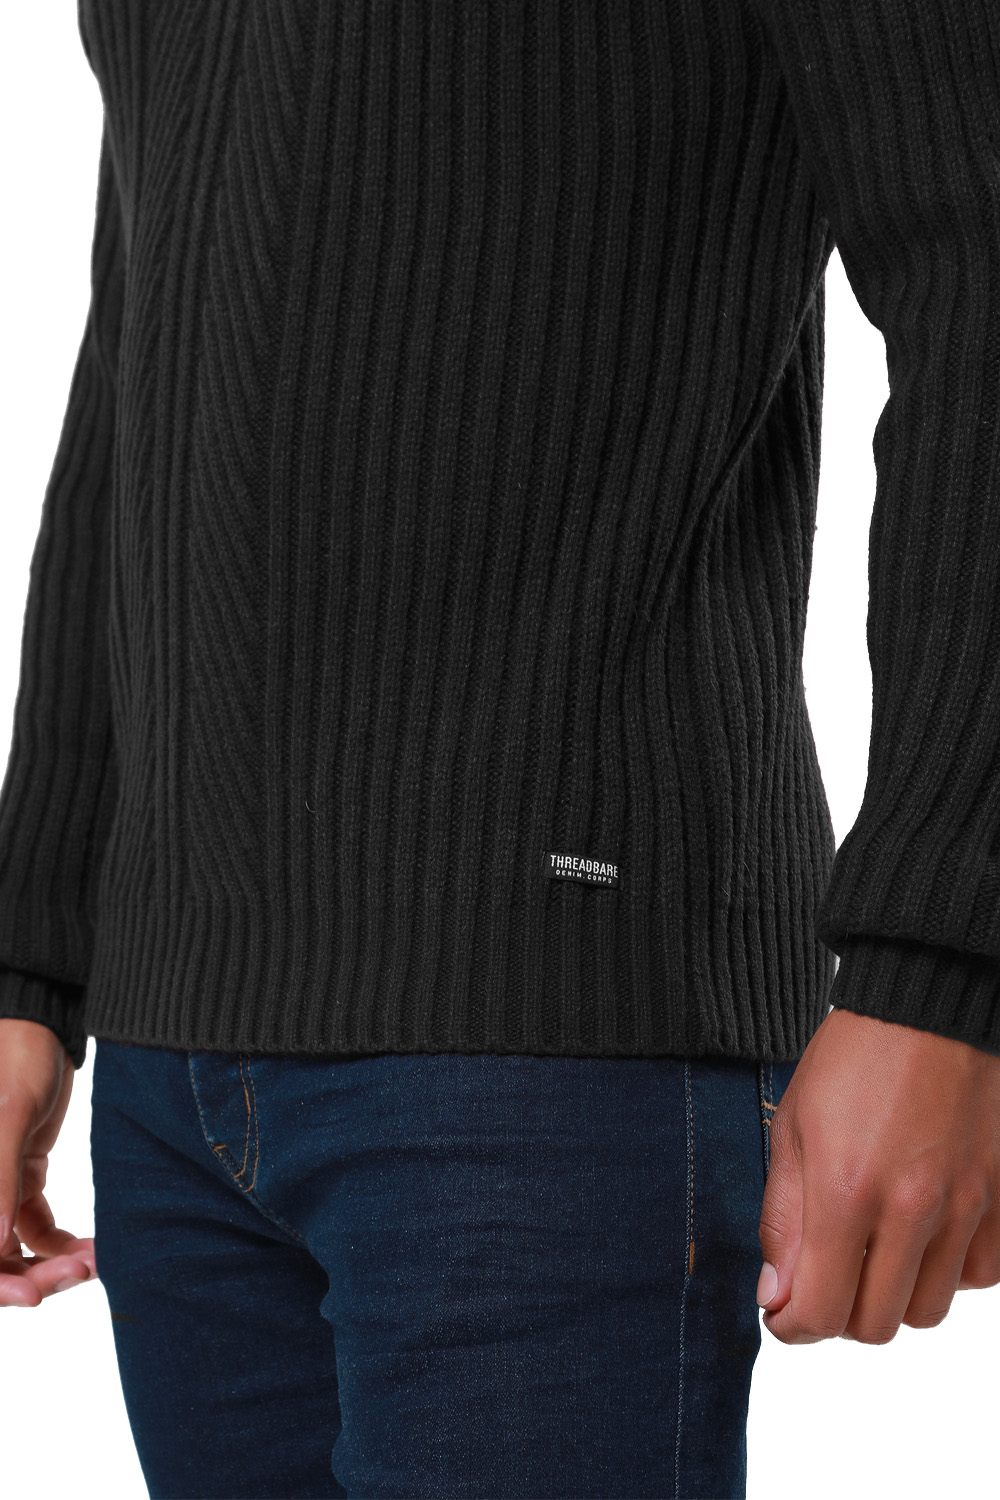 Threadbare-Mens-Saltbush-Jumper-Crew-Neck-Chunky-Cable-Knit-Wool-Blend-Sweater thumbnail 4